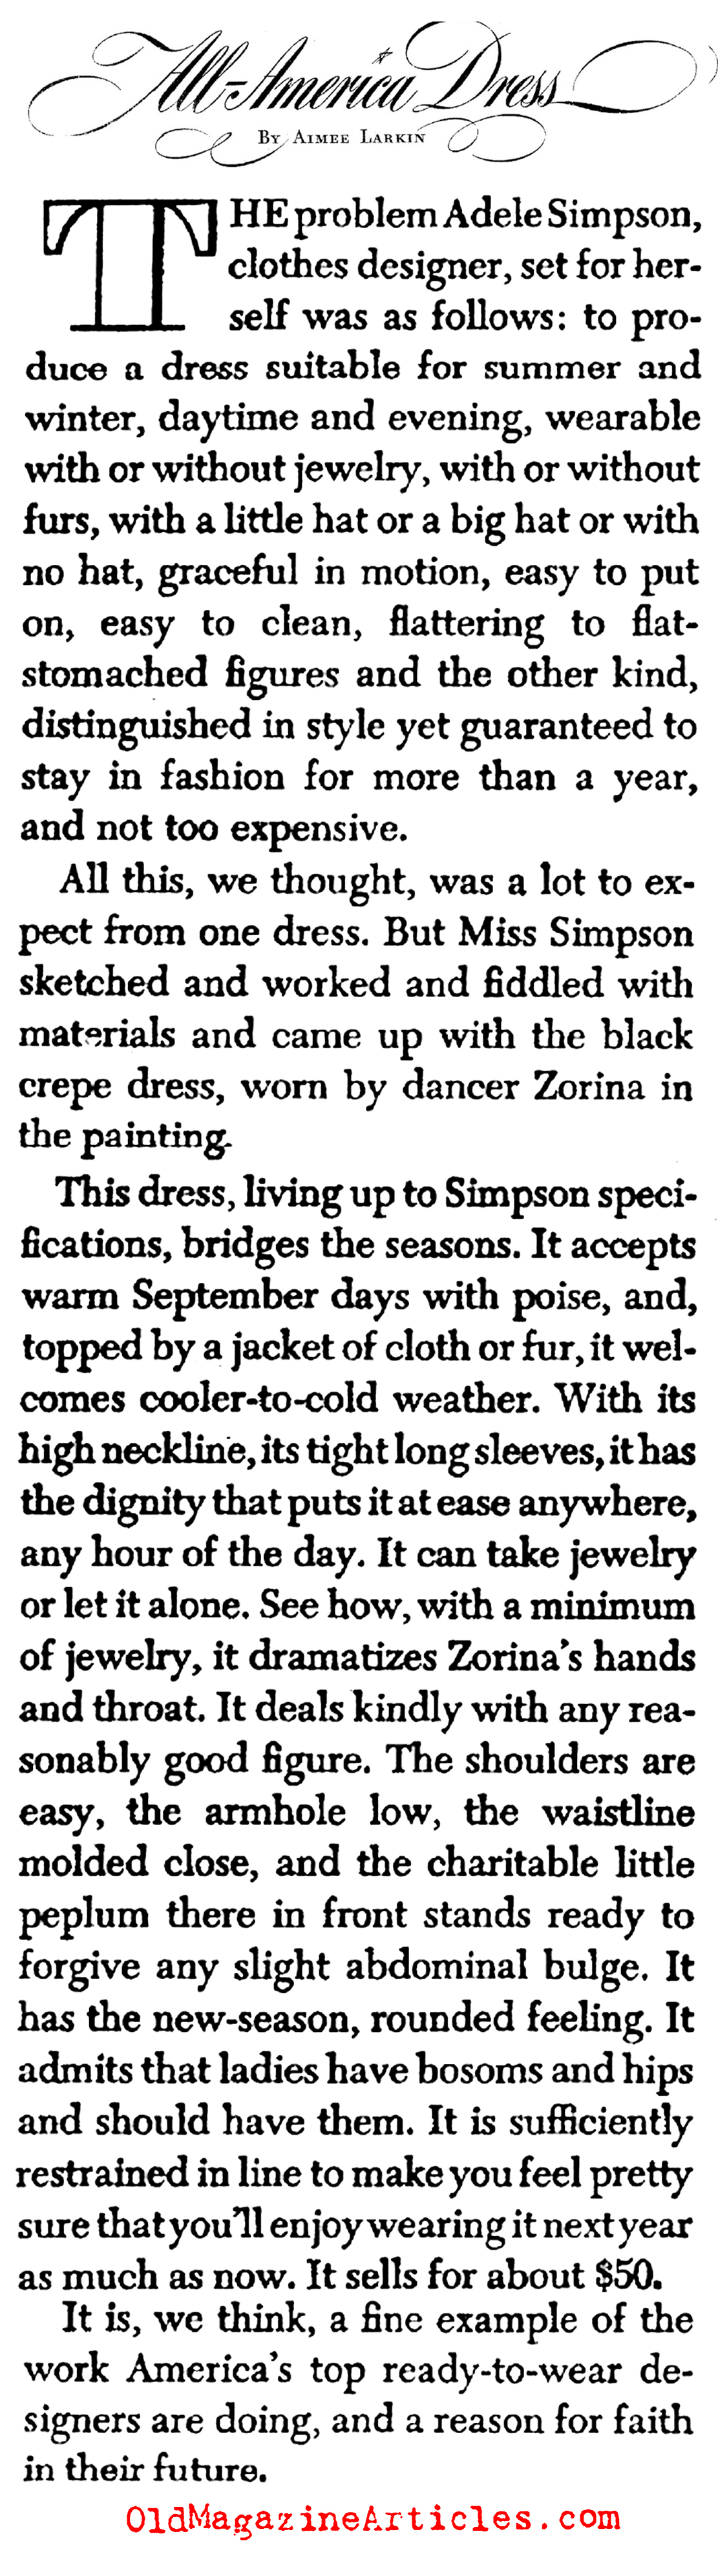 Adele Simpson and Her Fashions (Collier's Magazine, 1945)